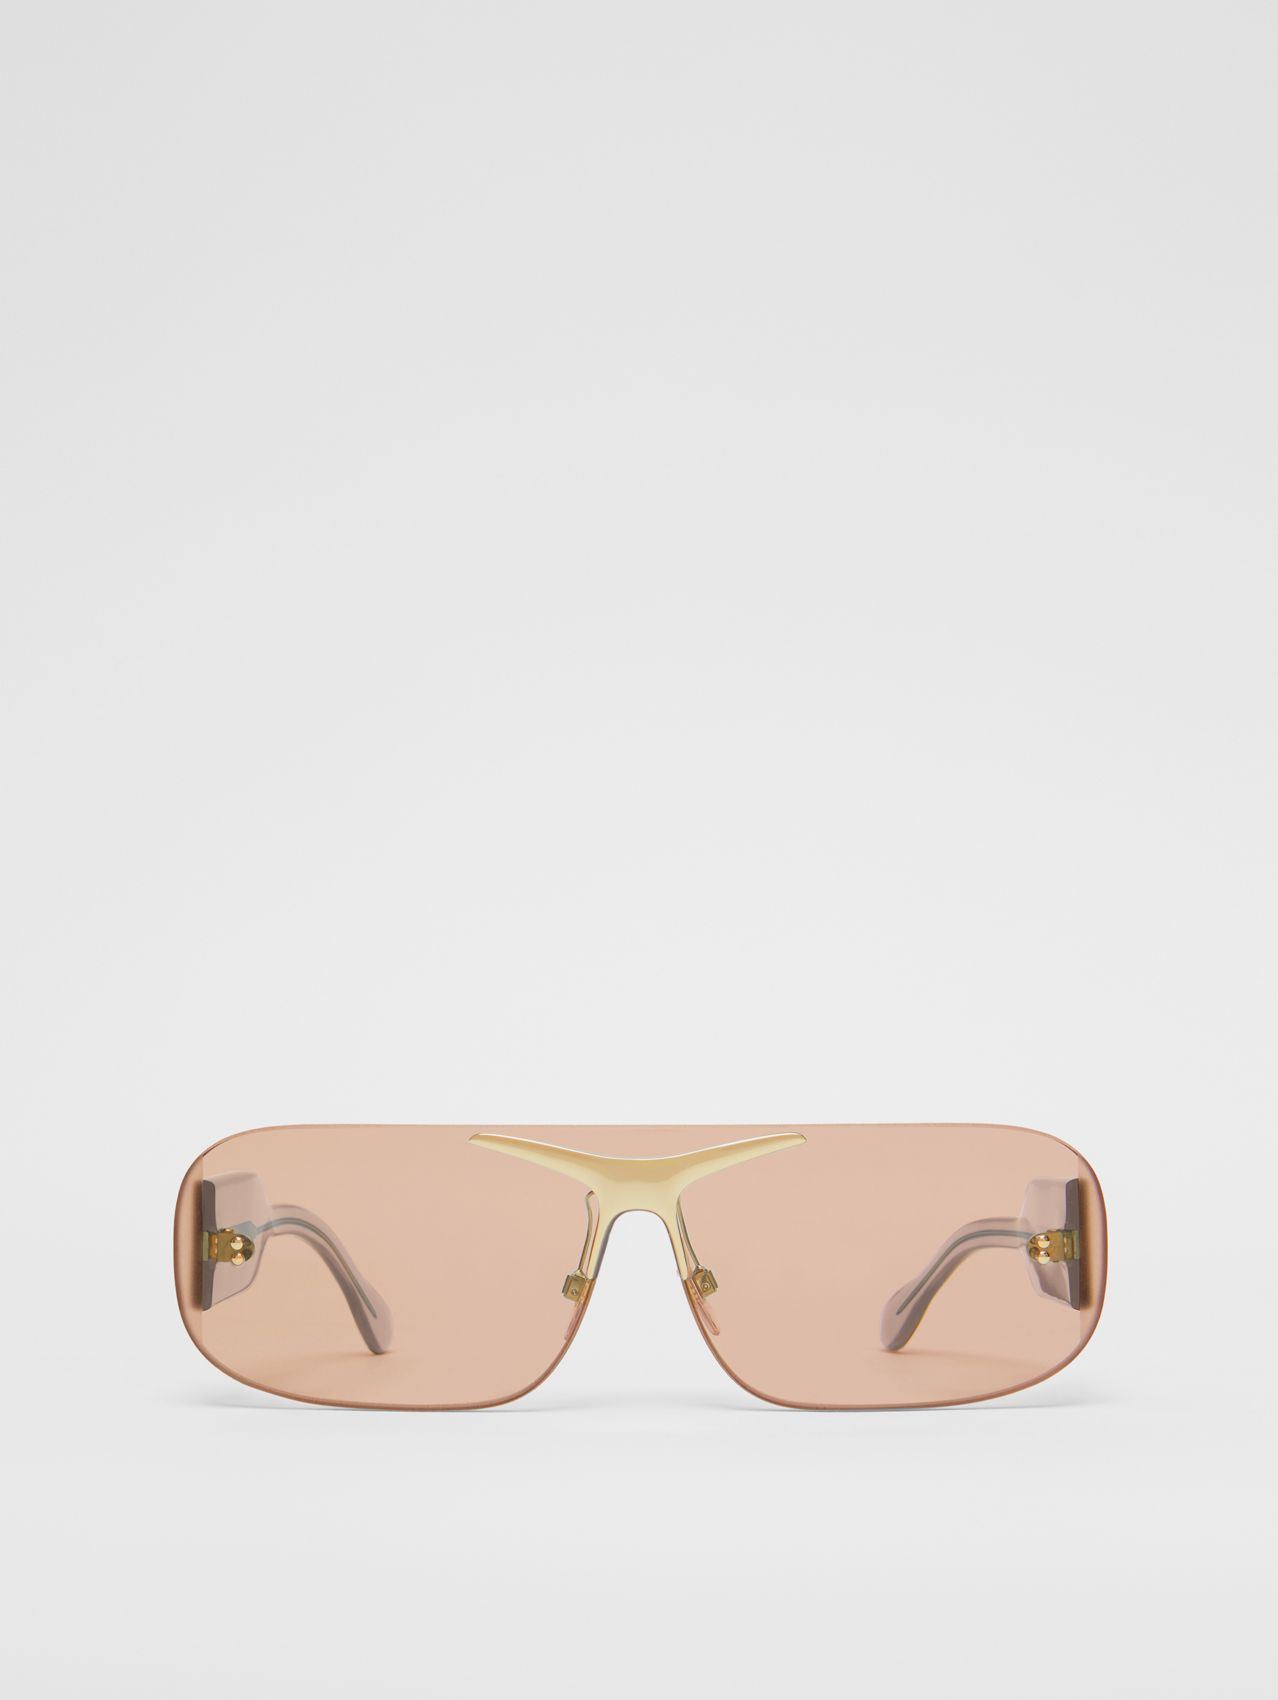 Blake Shield Sunglasses in Light Brown